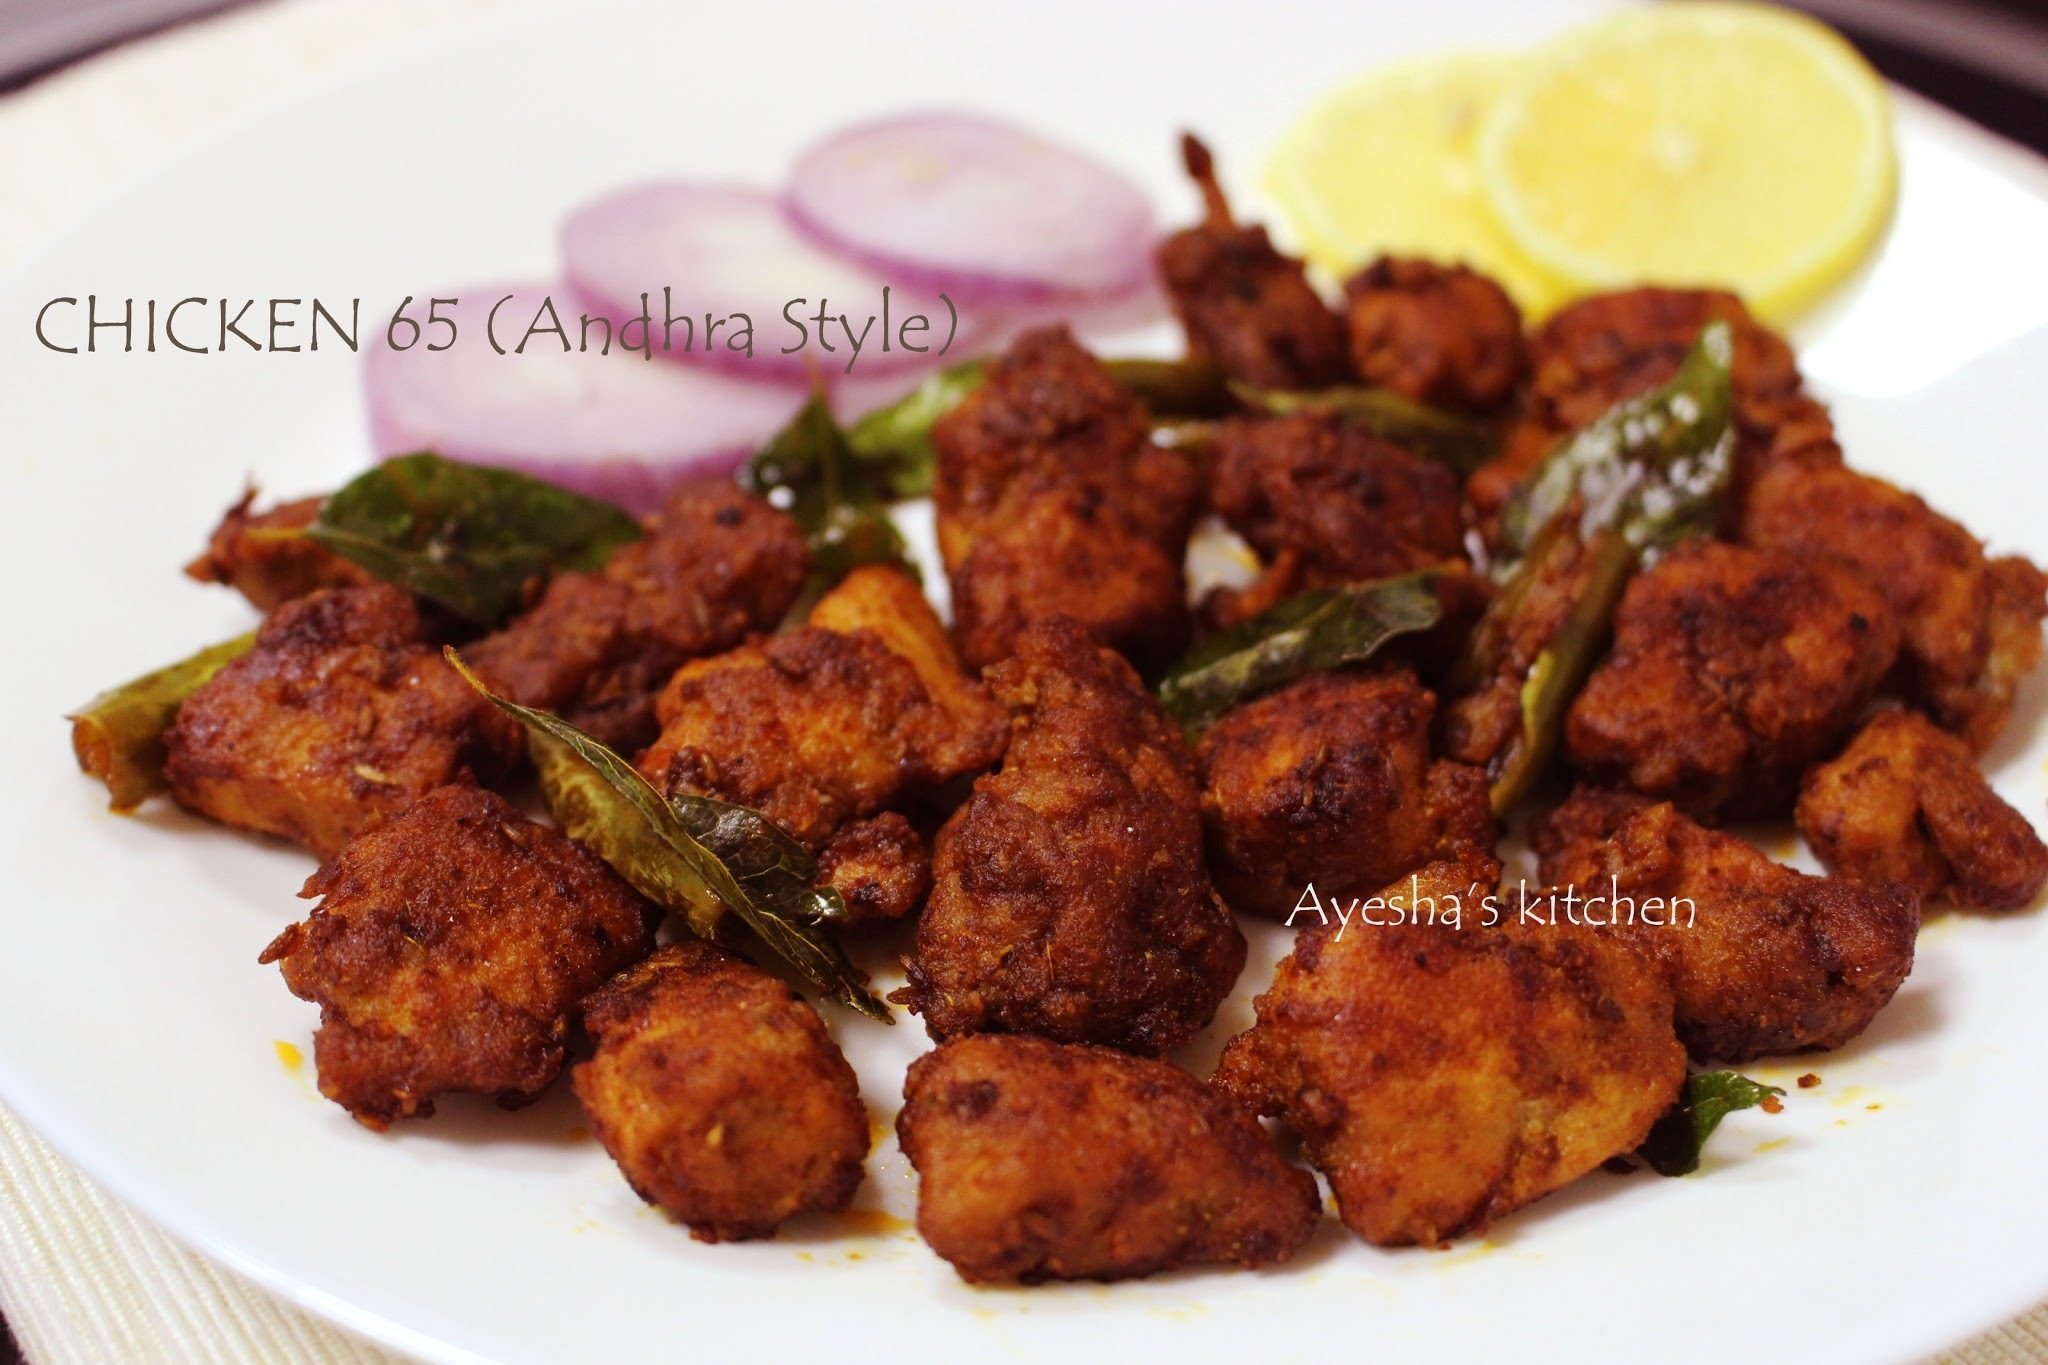 CHICKEN 65 RECIPE - HOW TO MAKE CHICKEN 65 ANDHRA STYLE